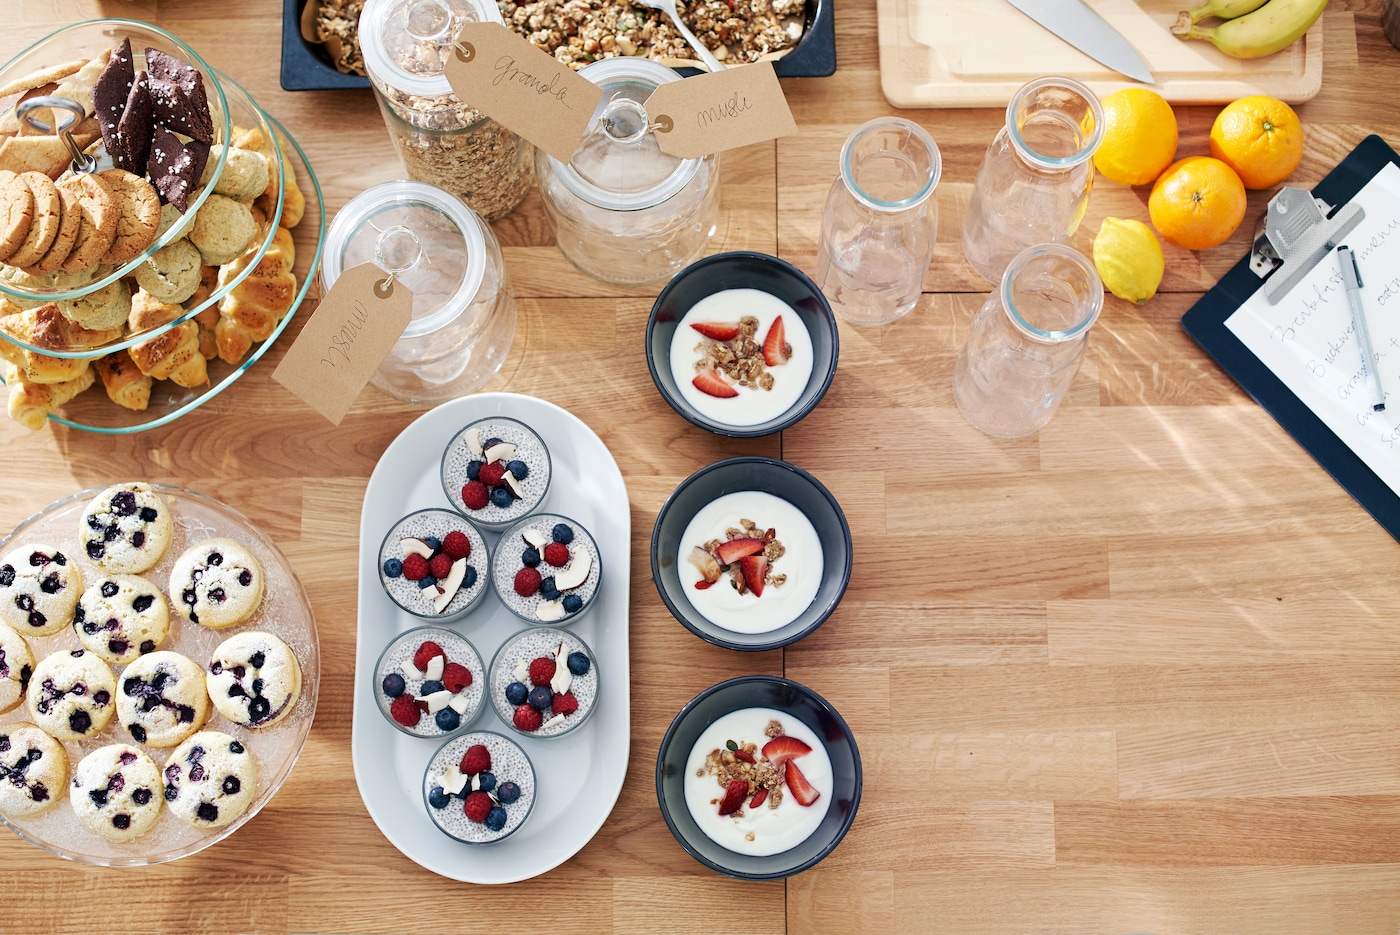 Table with biscuits, granola, fruit and other desserts.